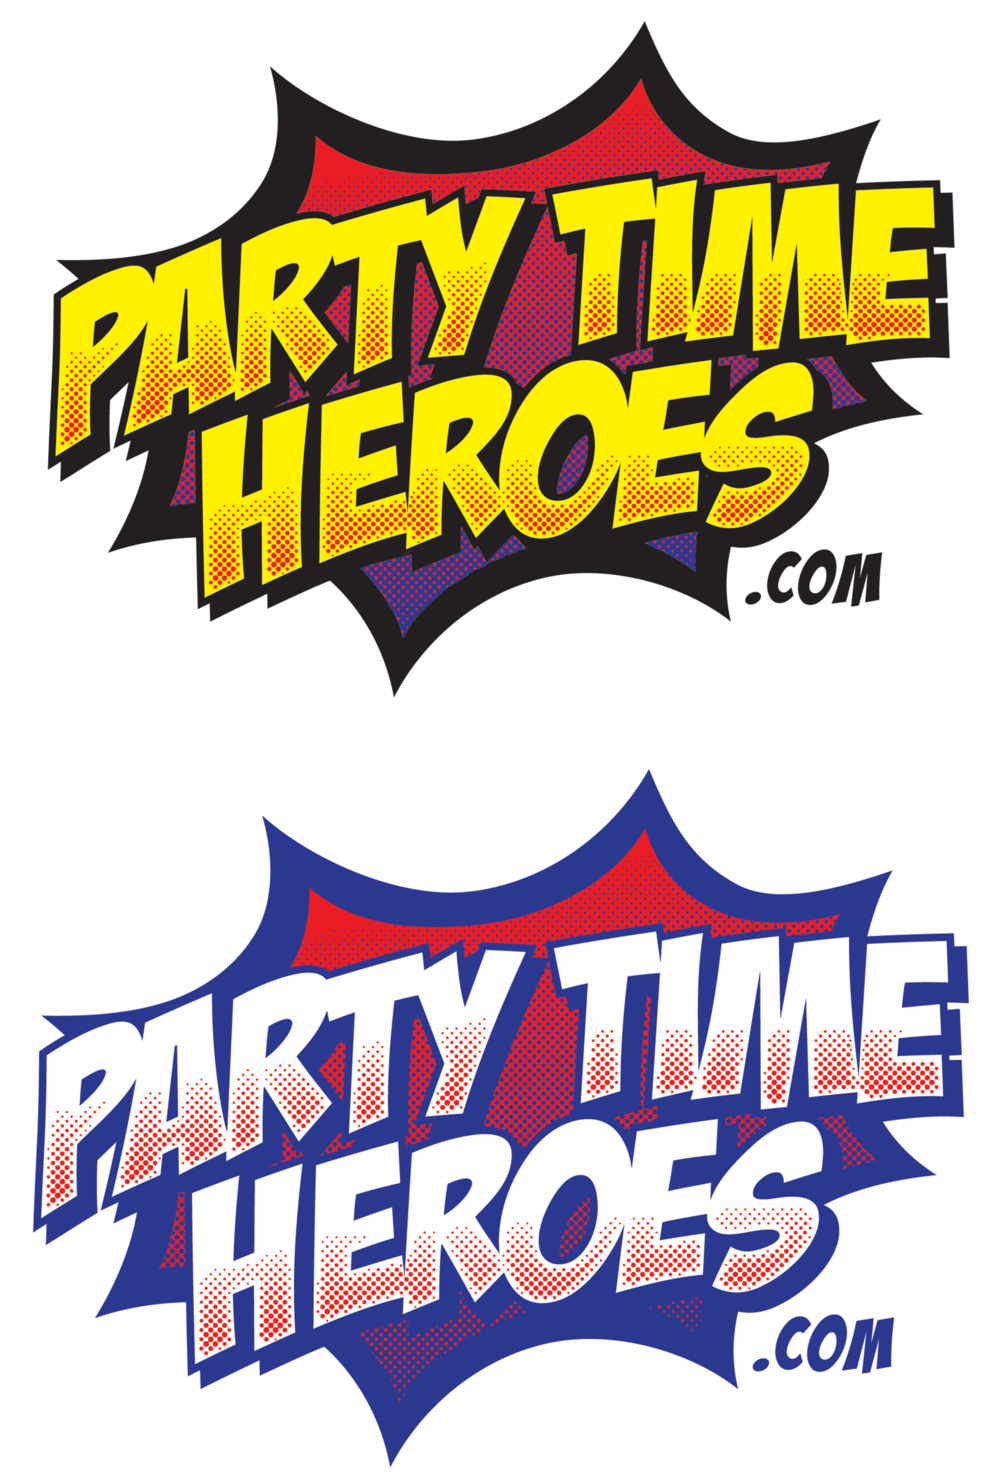 Company Rebrand - A new name matched with an exciting new logo for this event and party enhancing business! As a company that brings fully-costumed superheroes and pop-culture personalities to parties and events it made a lot of sense to introduce an explosive comic book feel to the new brand identity.